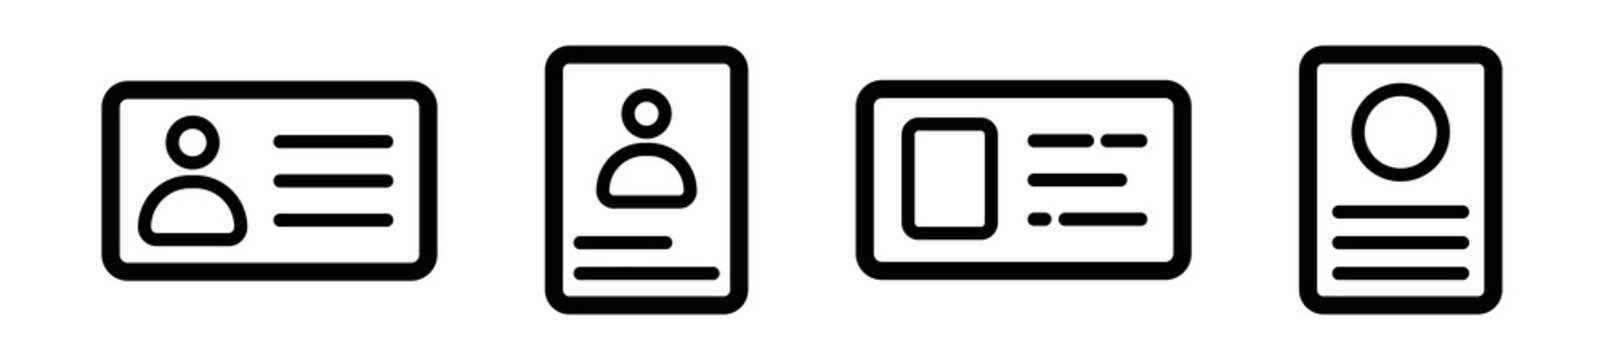 Set of identity card icons in line style